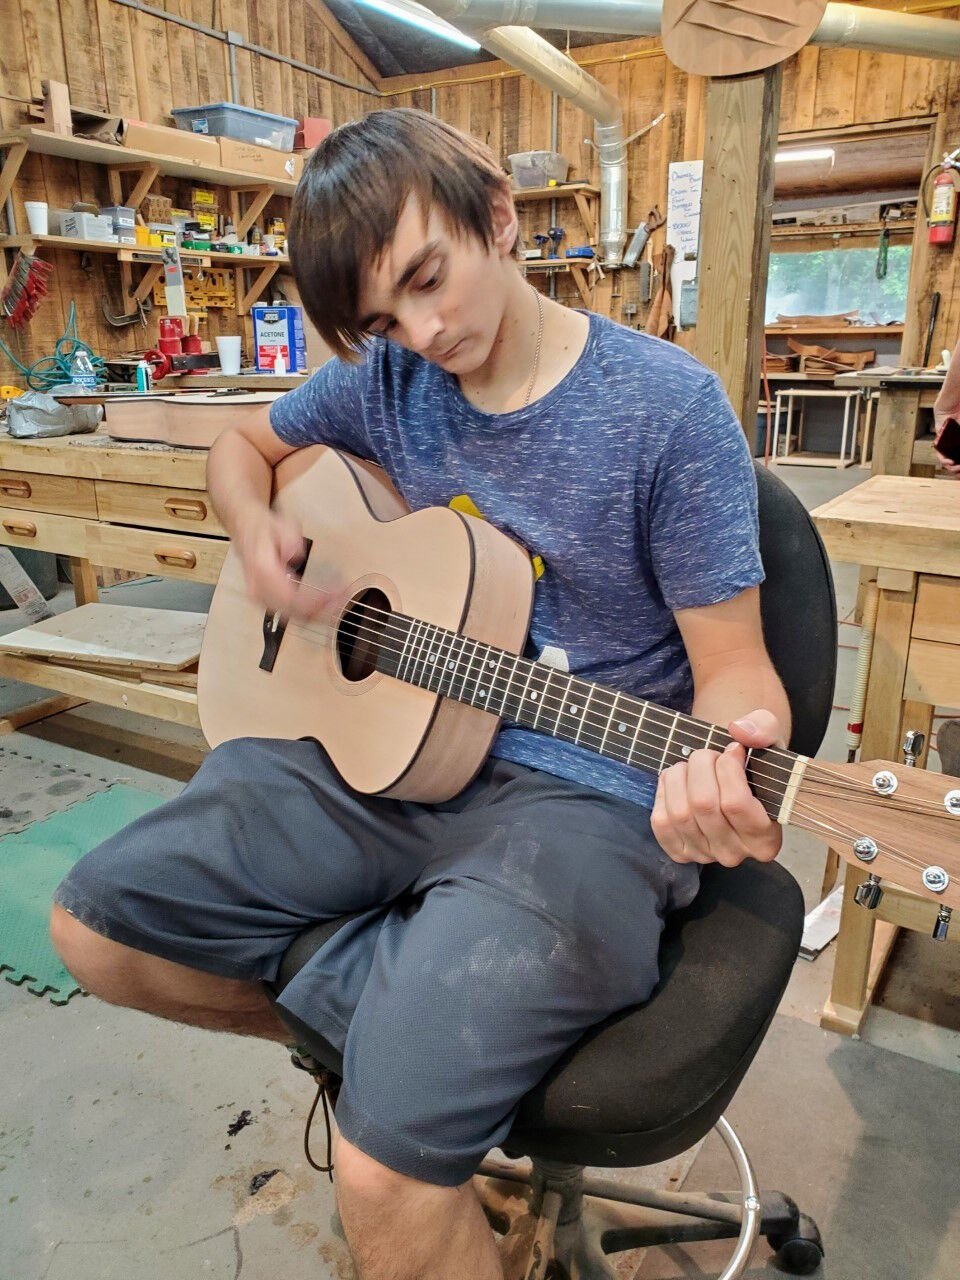 Gabe Sipos Plays the Guitar He Build at Narrow Gate Lodge.jpg